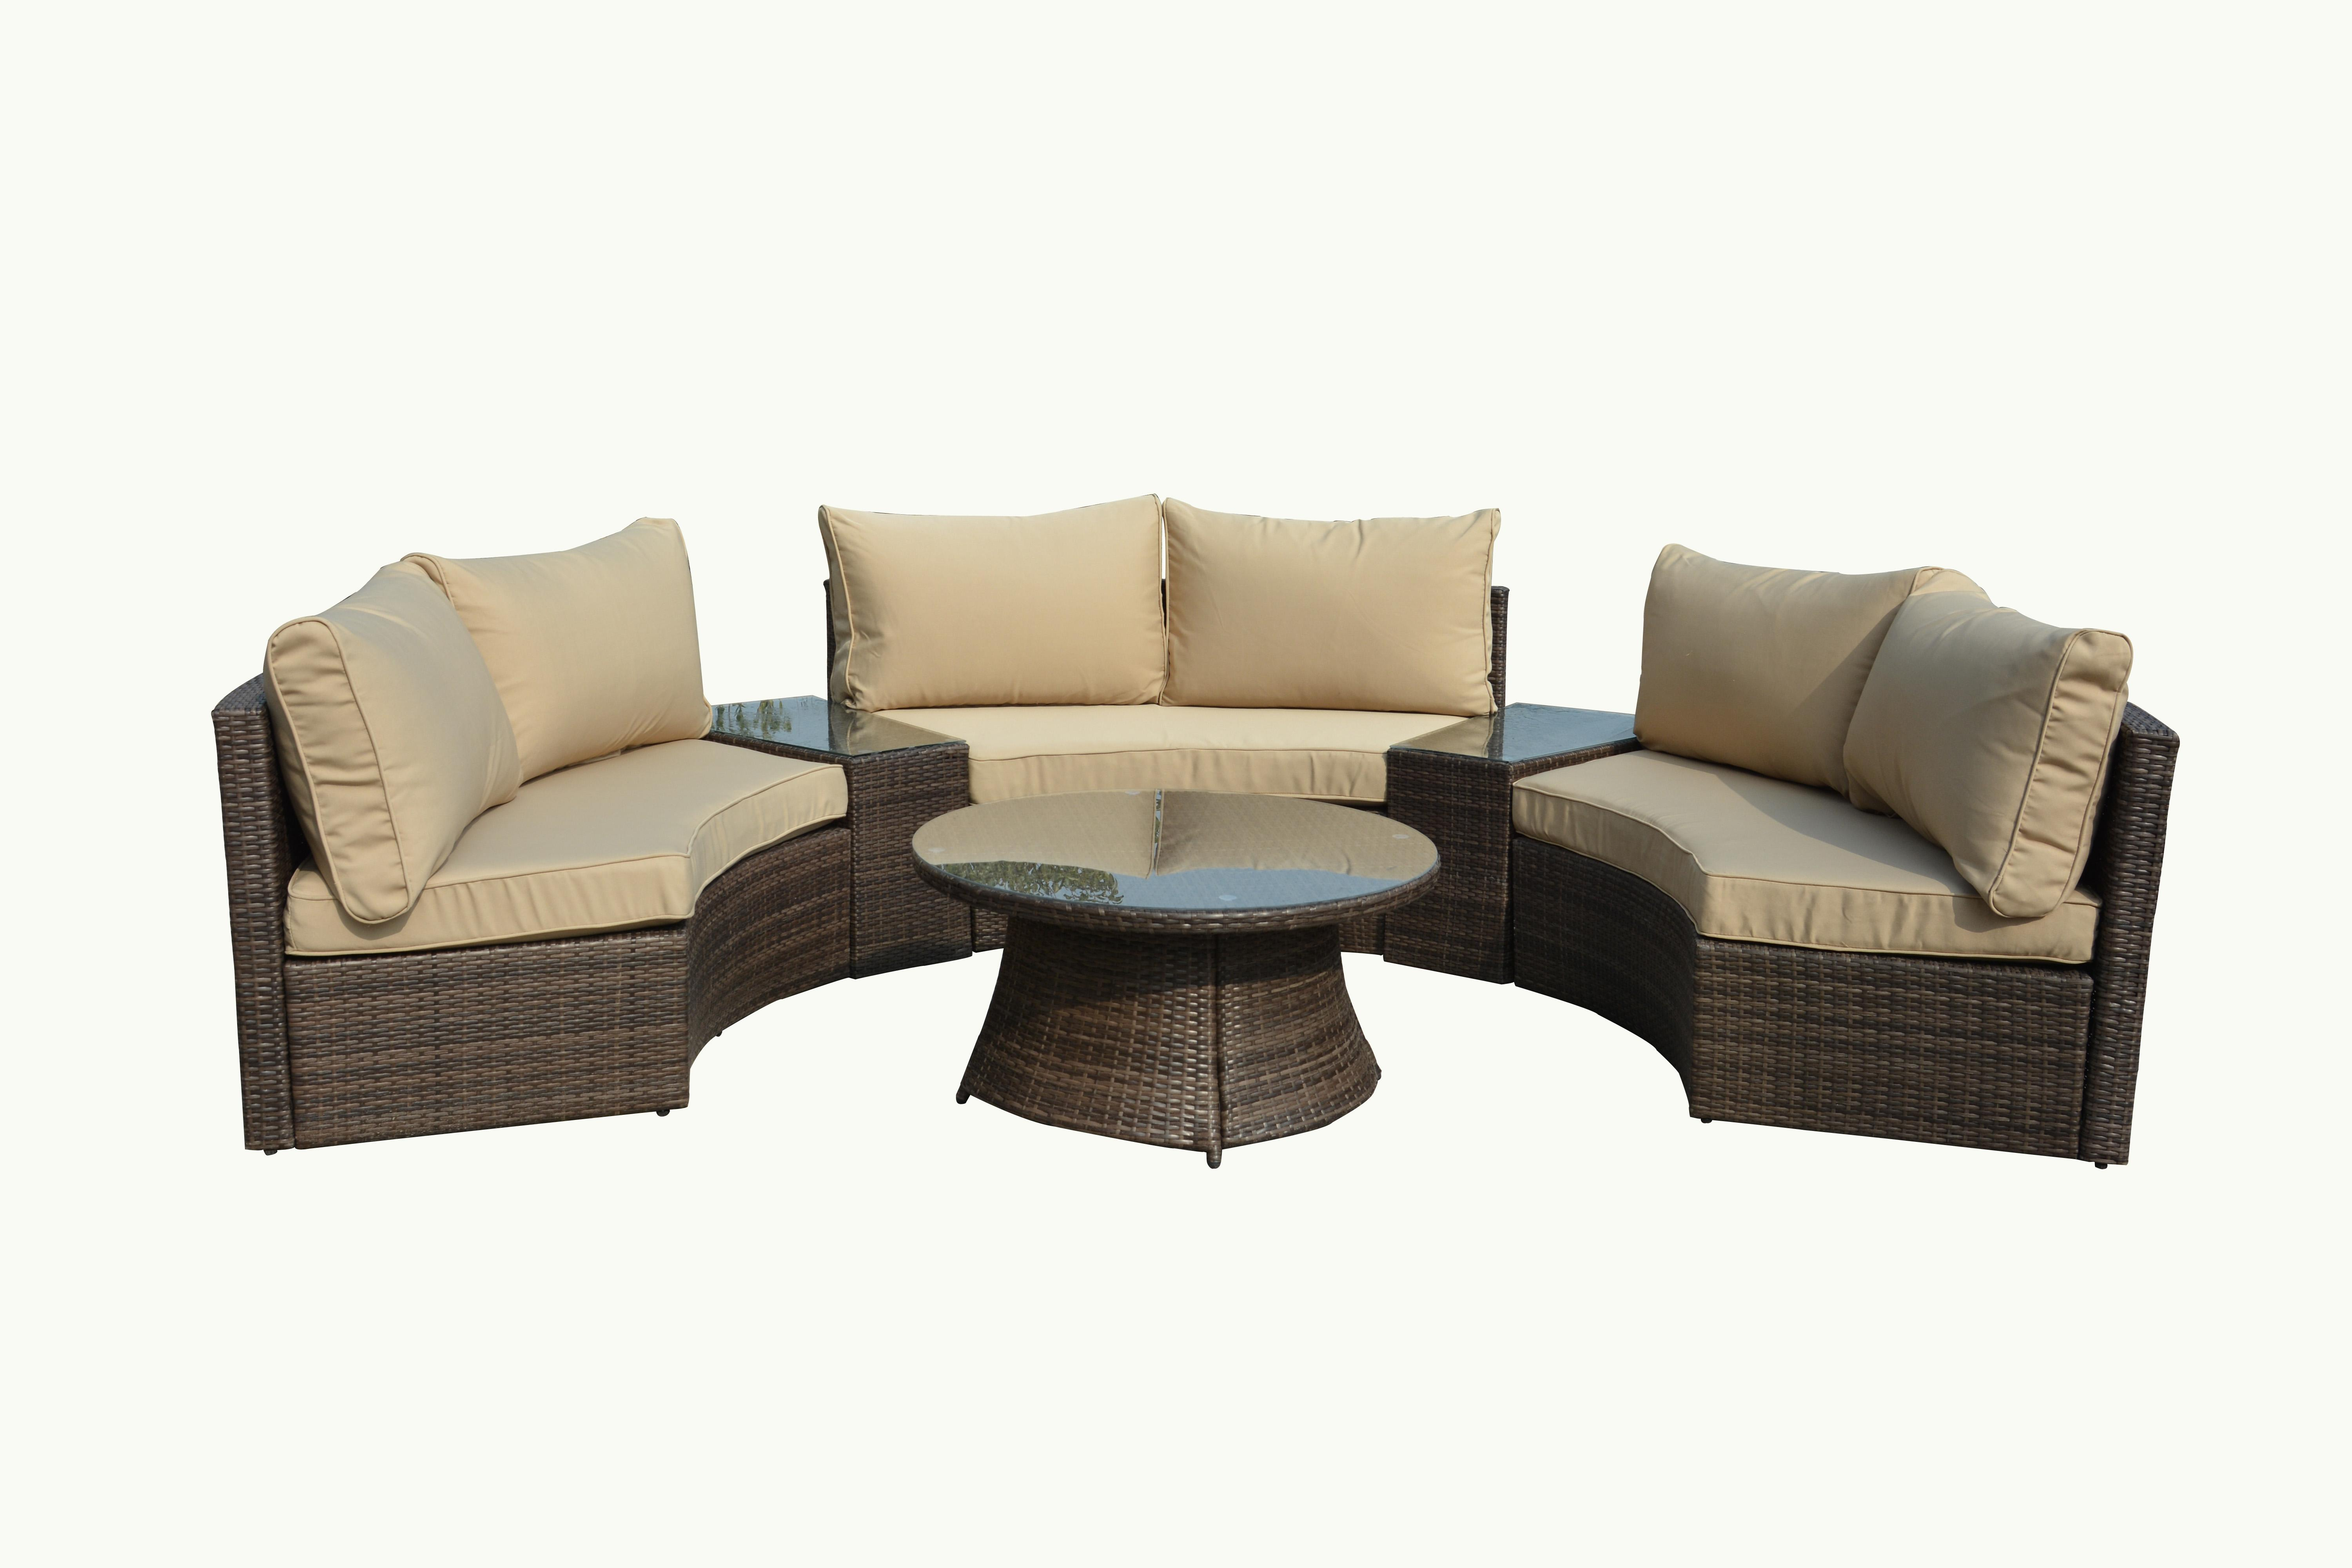 Amazon Manhattan fort Pearl Semi Circle Outdoor Patio